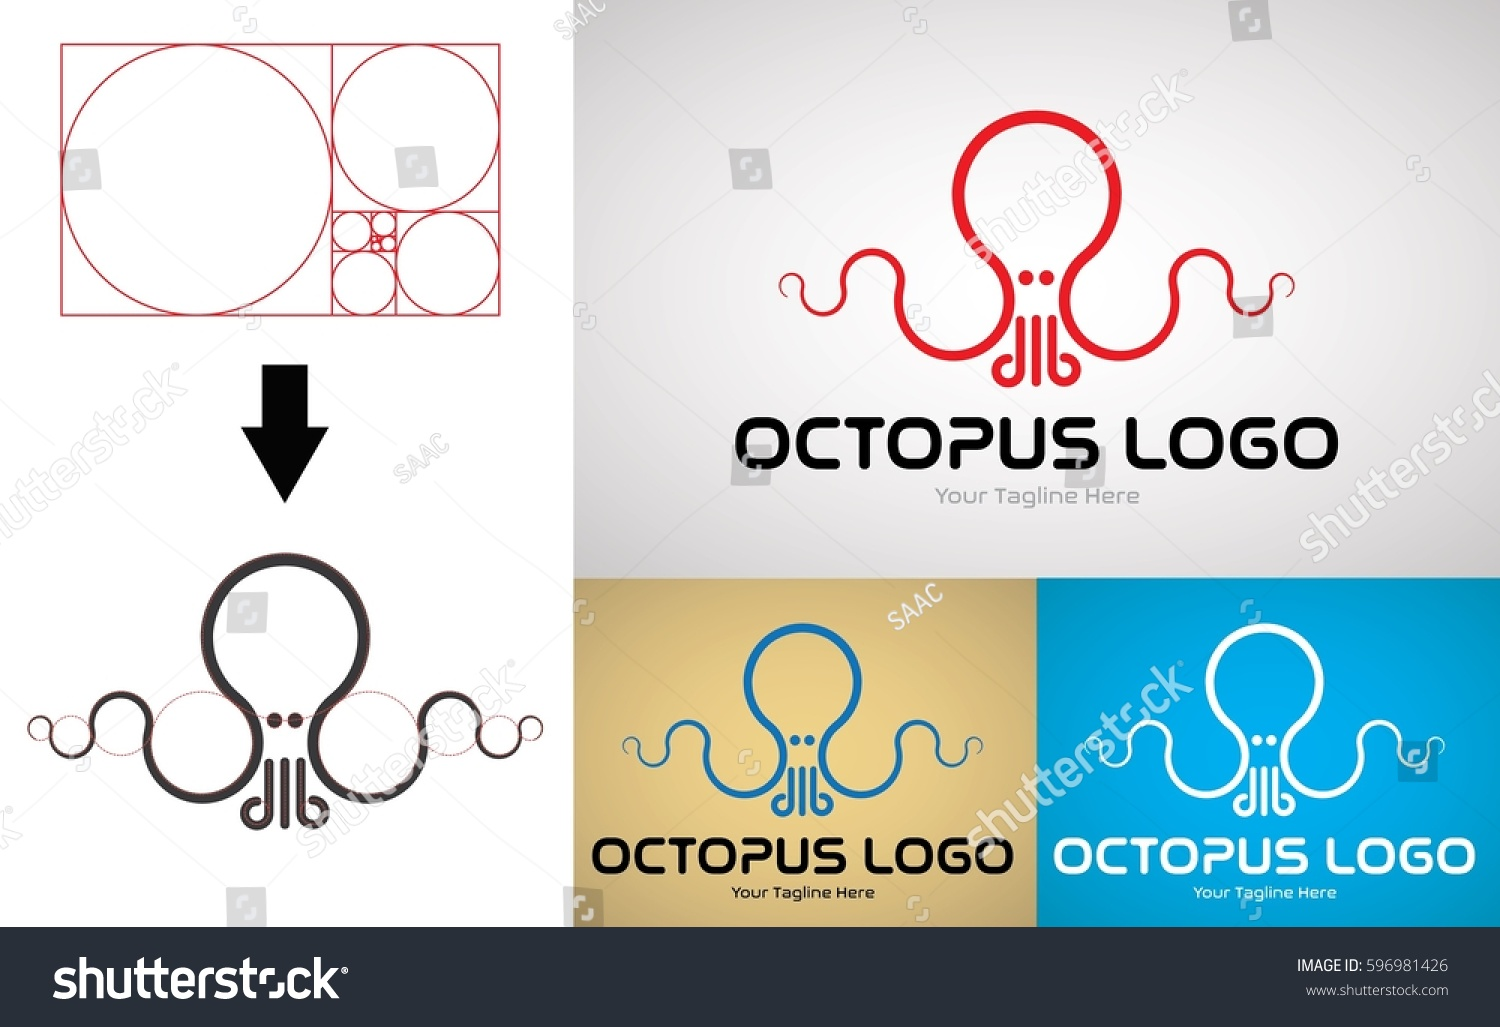 Octopus Logo  Pinterest